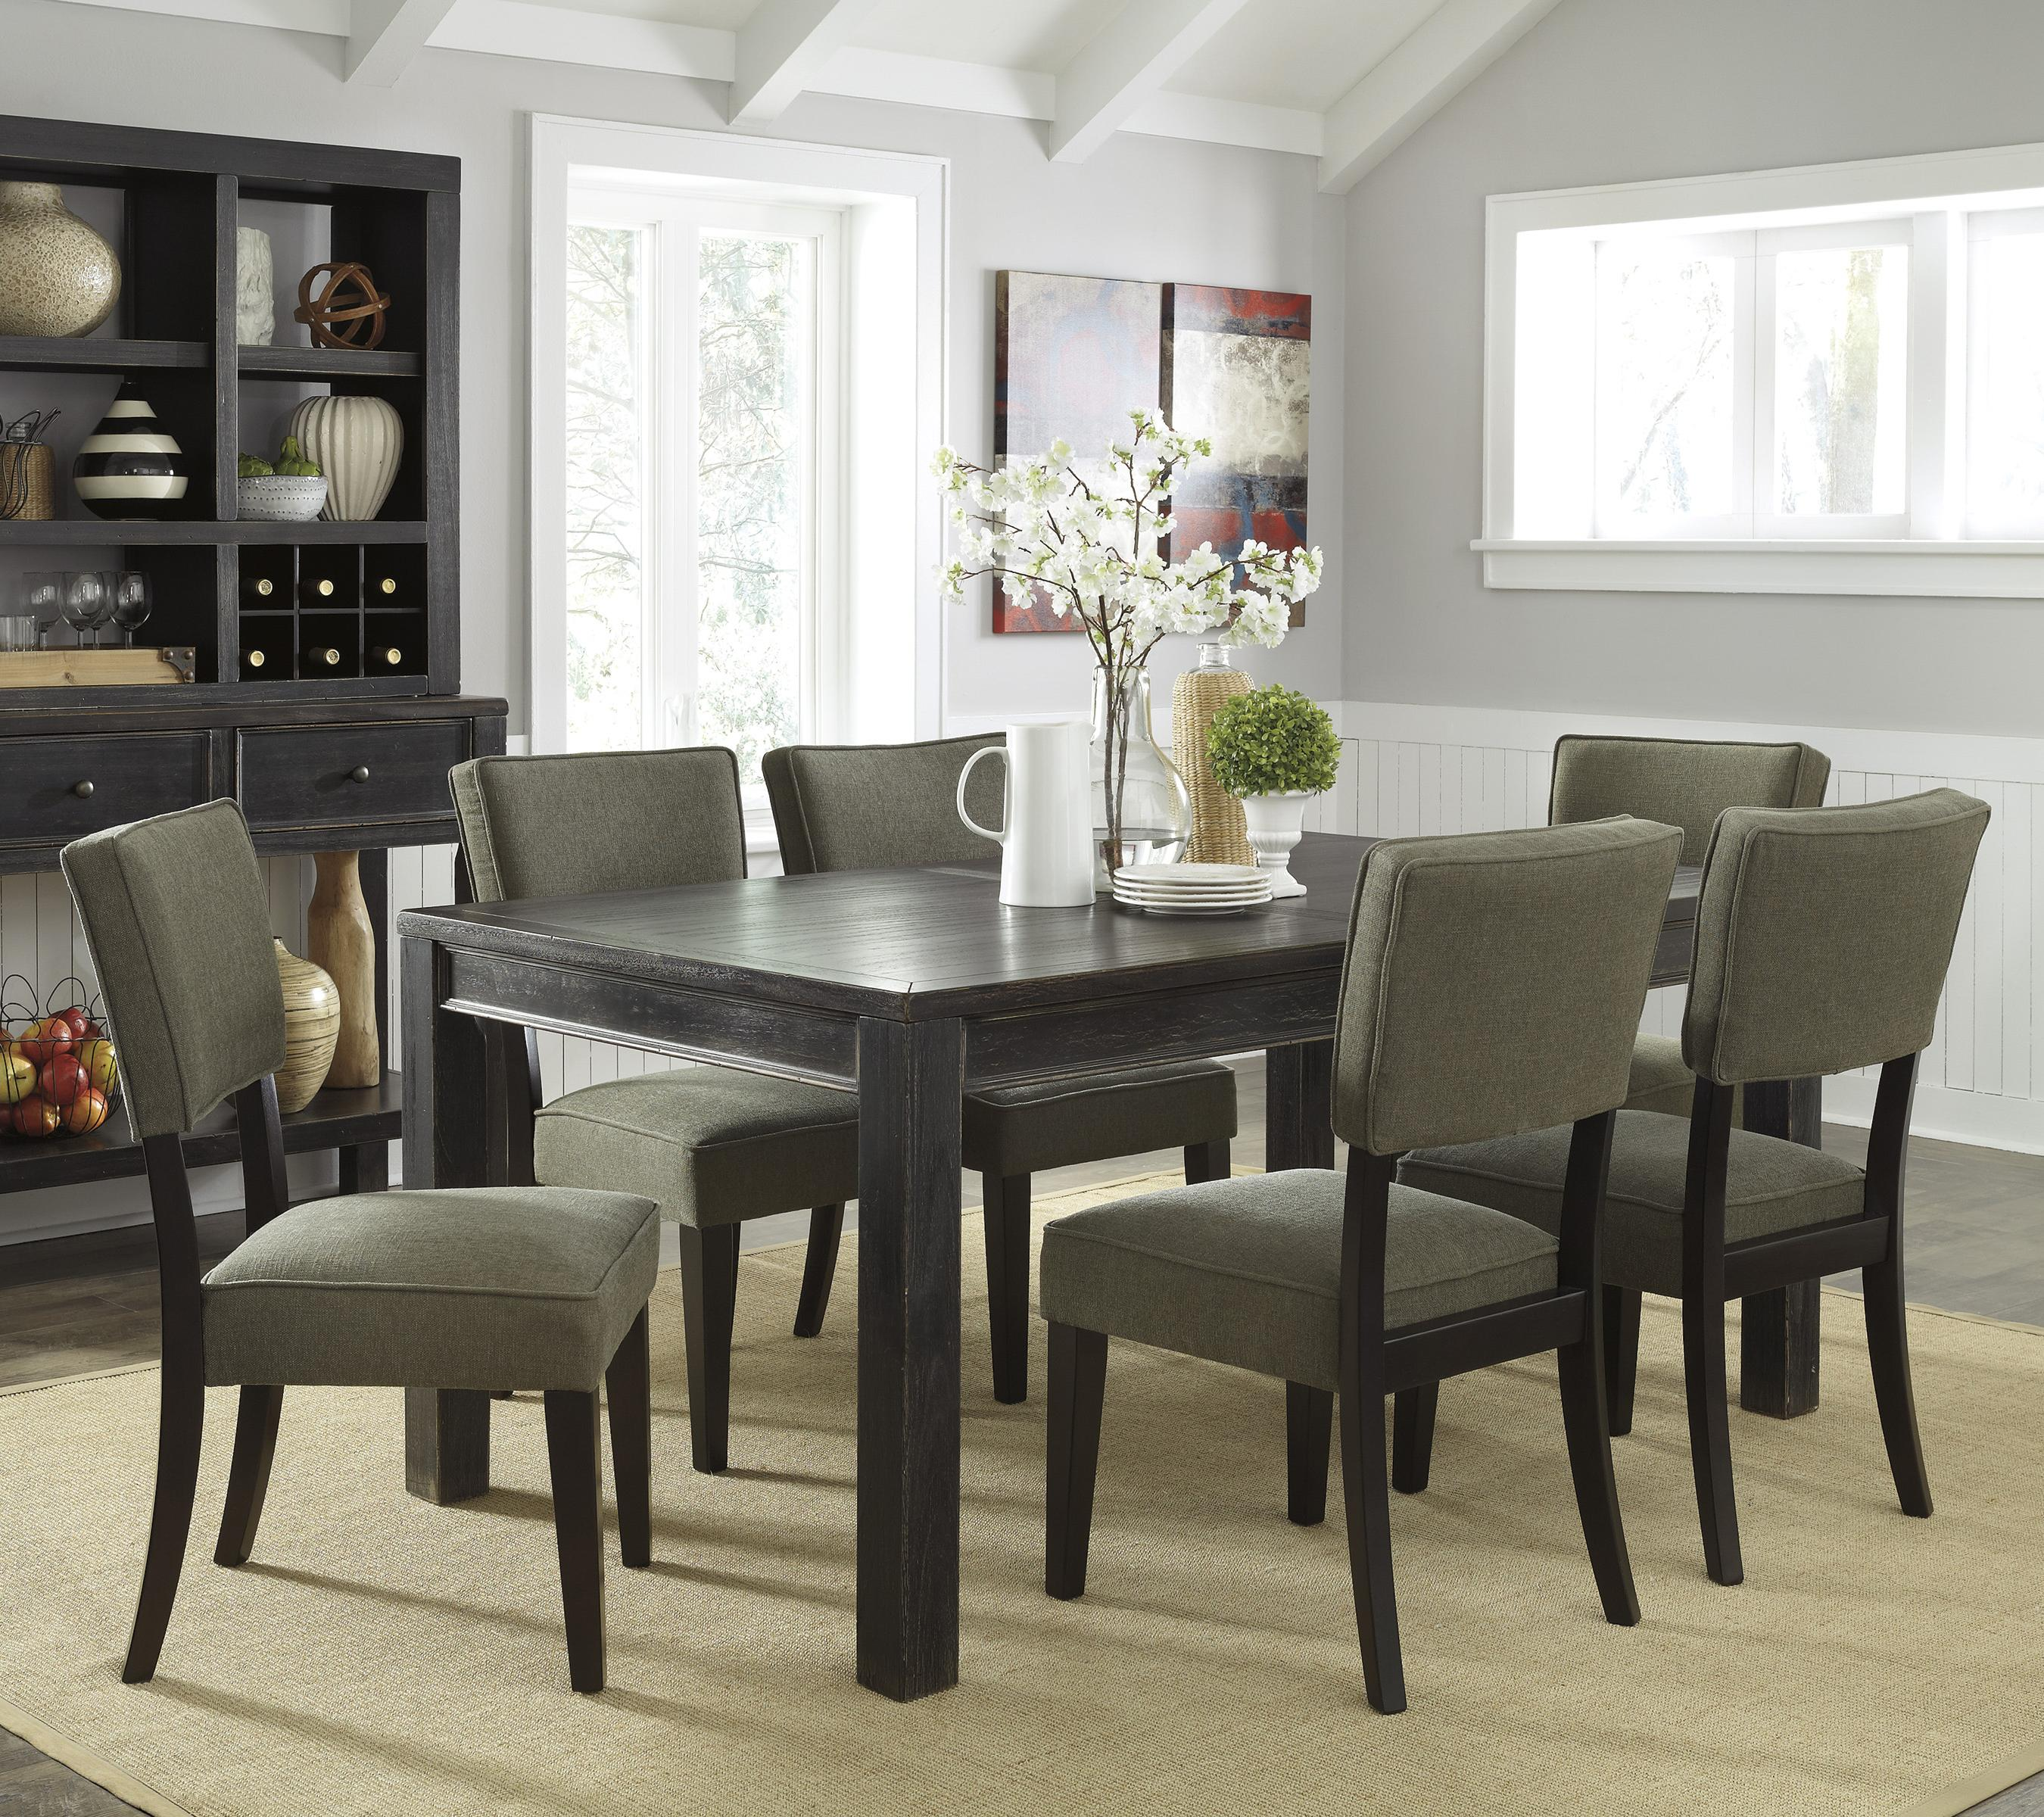 Signature Design by Ashley Gavelston 7-Piece Rectangular Table Dining Set - Item Number: D532-25+6x02